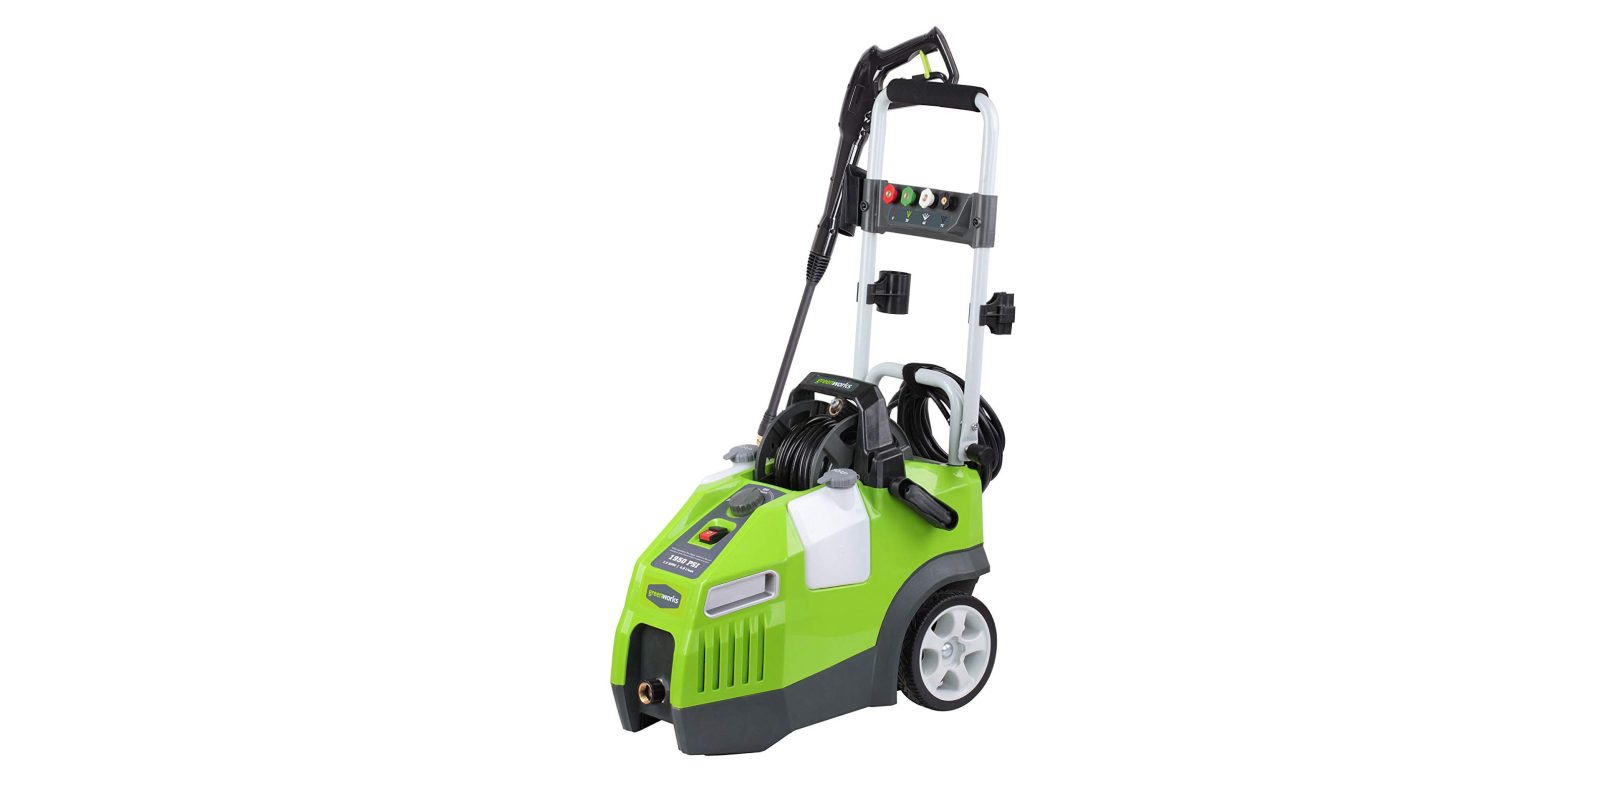 Score off-season savings on Greenworks Electric Pressure Washer at $81, more